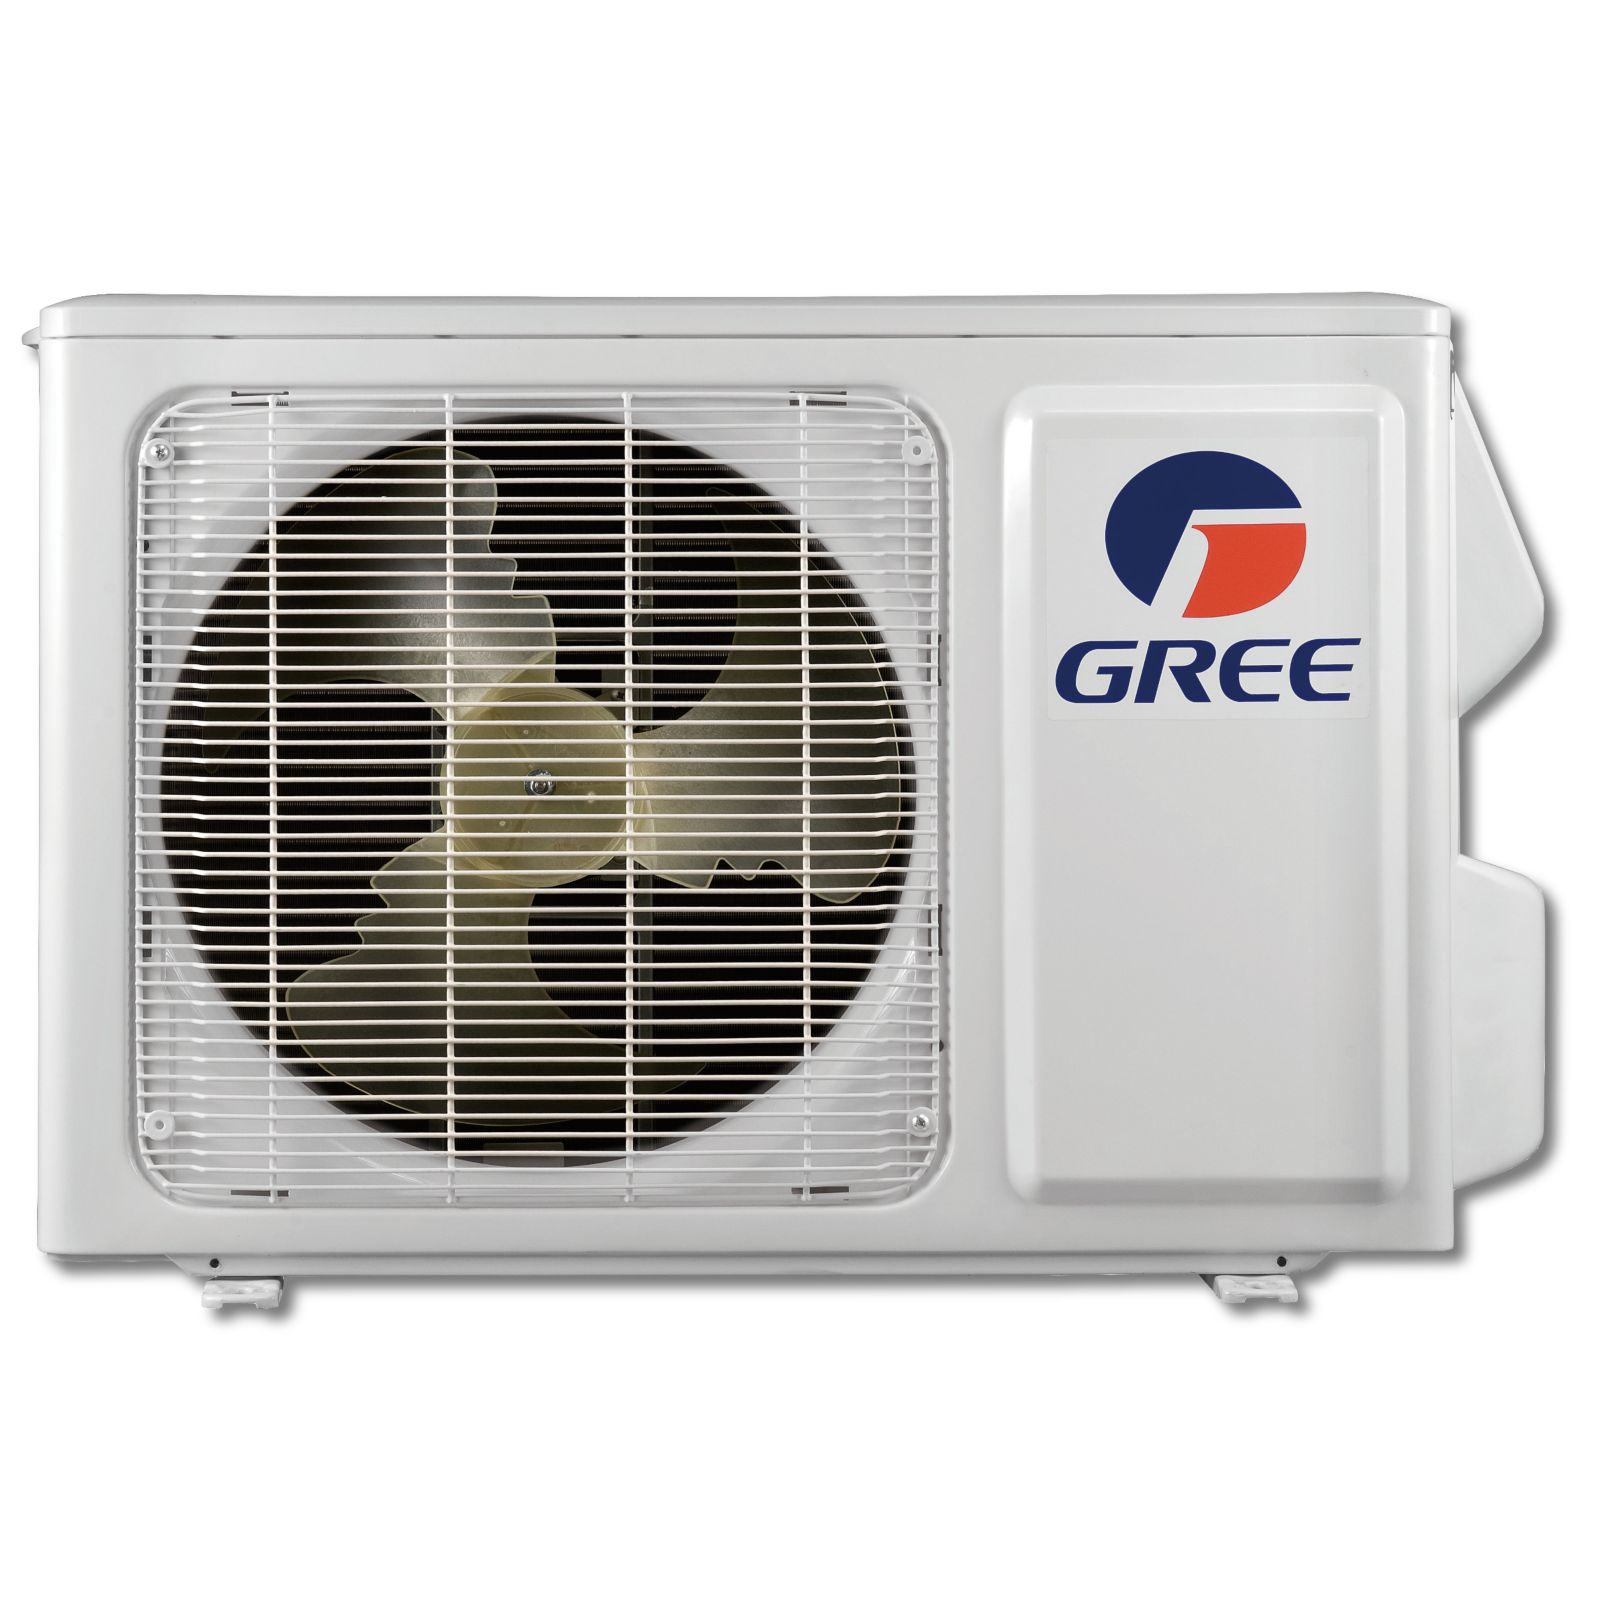 GREE RIO12HP115V1AO - RIO Ductless Outdoor Unit 115V,60 Hz High Efficiency DC Inverter Technology 16 SEER, 9.4 EER, 8.6 HSPF